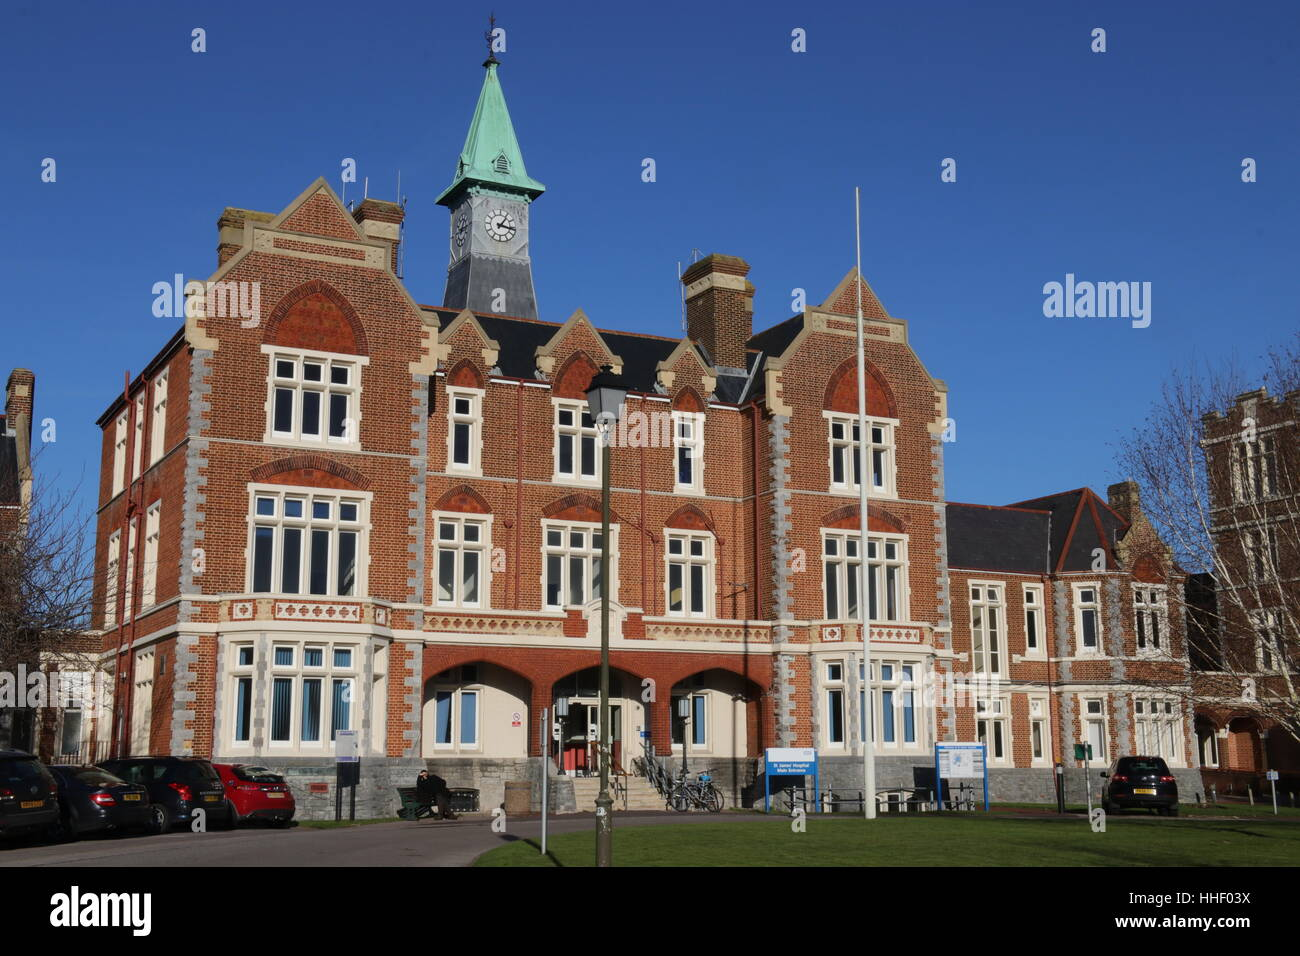 st-james-hospital-with-its-clock-tower-in-portsmouth-england-HHF03X.jpg?profile=RESIZE_400x